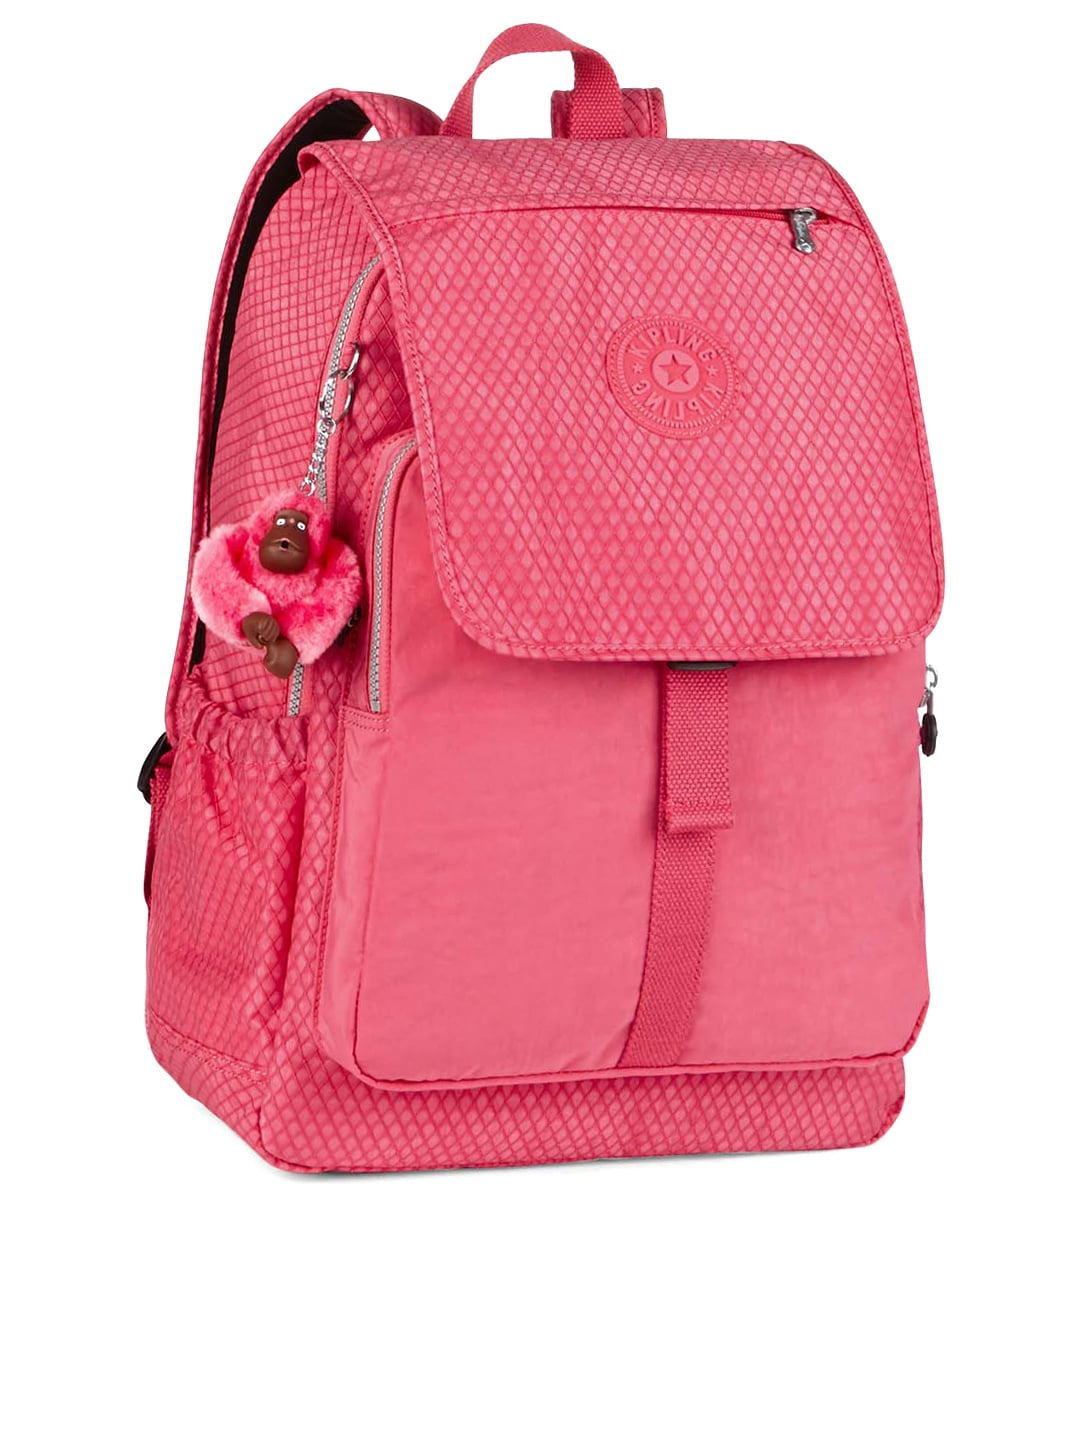 250b0c128cd6 Kipling - Buy Kipling online in India